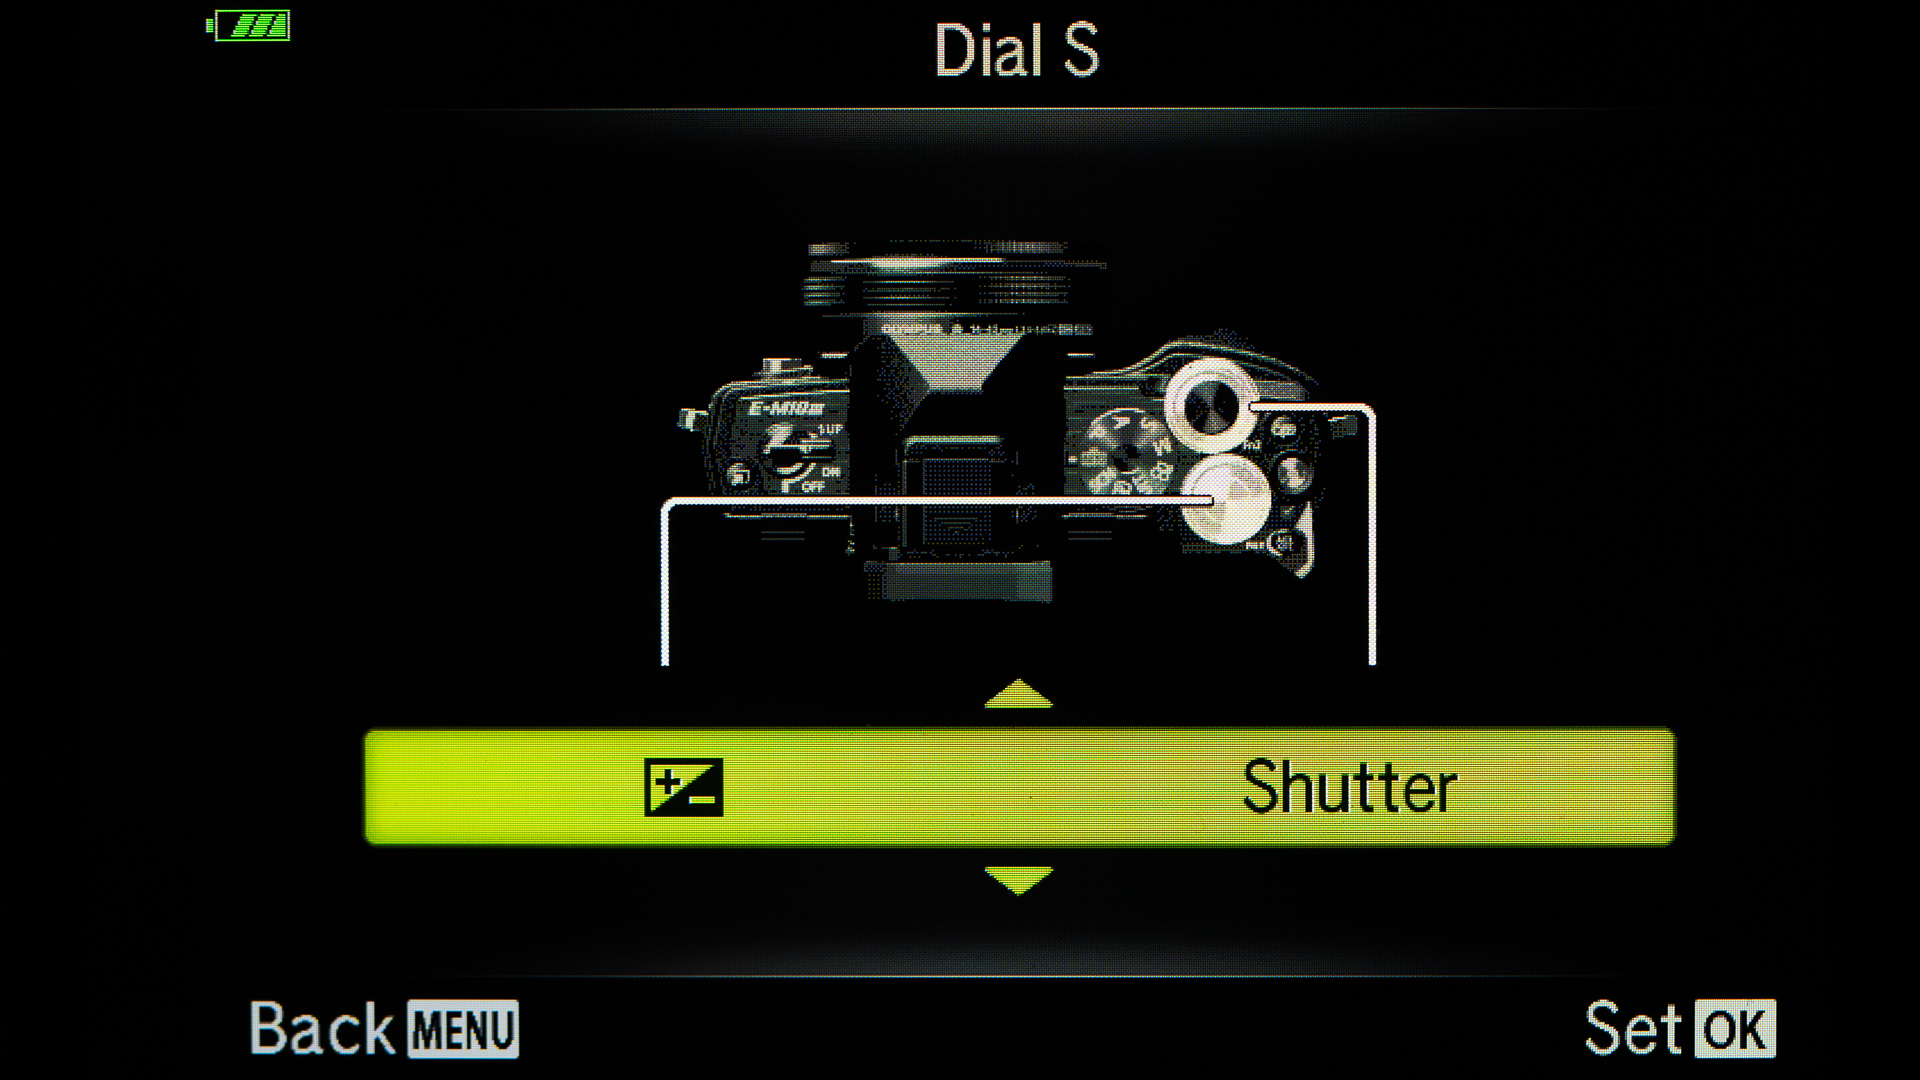 I set up the Dials so that the Exposure Compensation is on the back wheel. The front wheel is for Aperture or Shutter Speed depending on what Mode you are using.